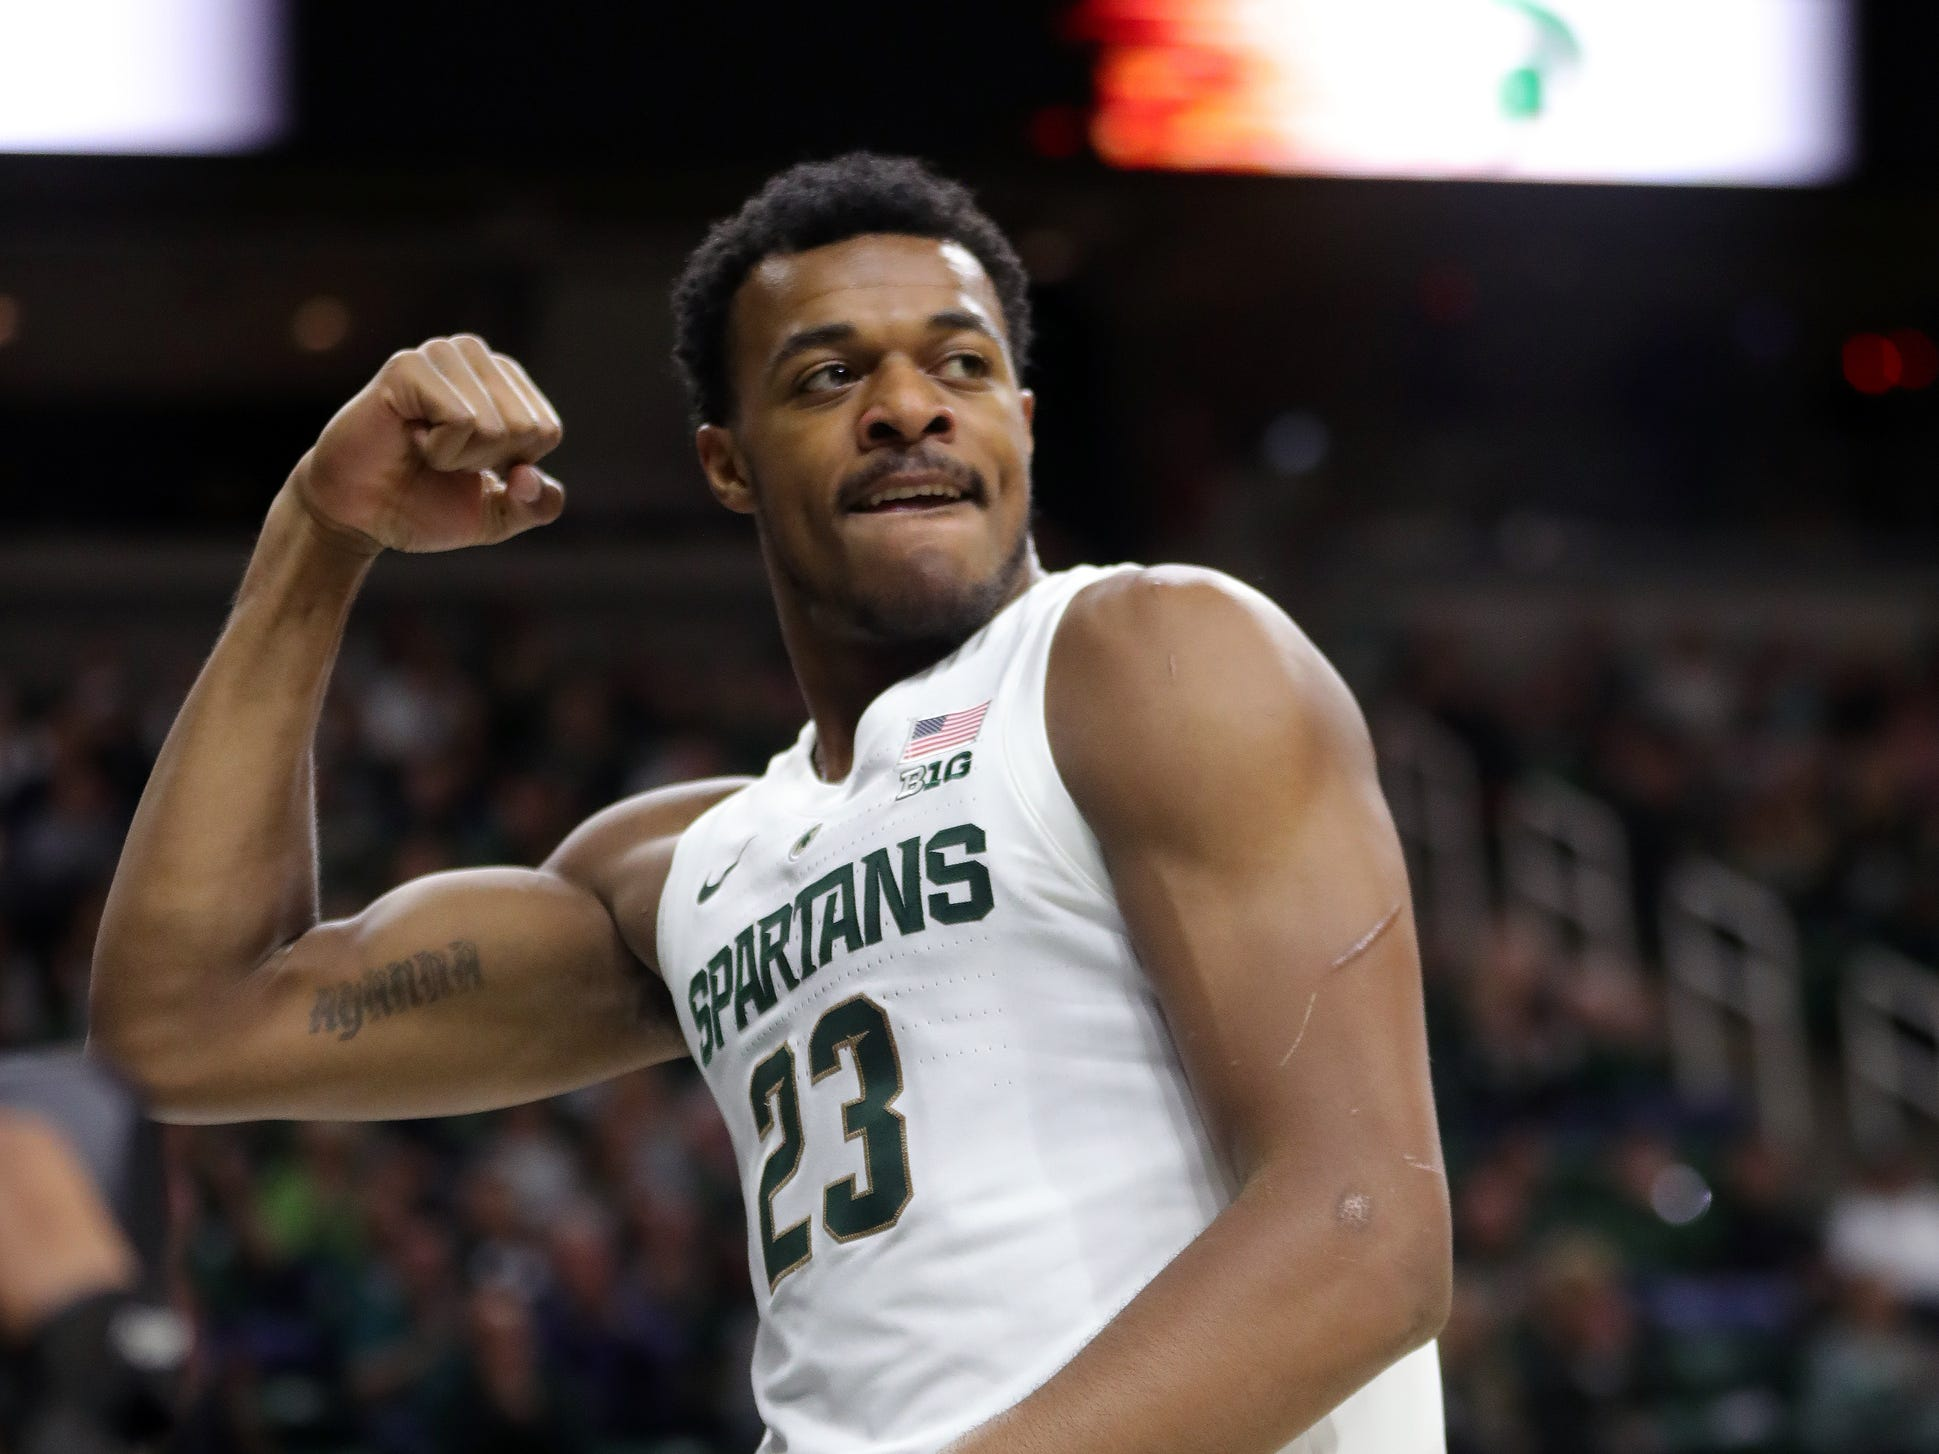 Michigan State forward Xavier Tillman reacts after scoring against Green Bay during the first half Sunday, Dec. 16, 2018 at the Breslin Center in East Lansing, Mich.